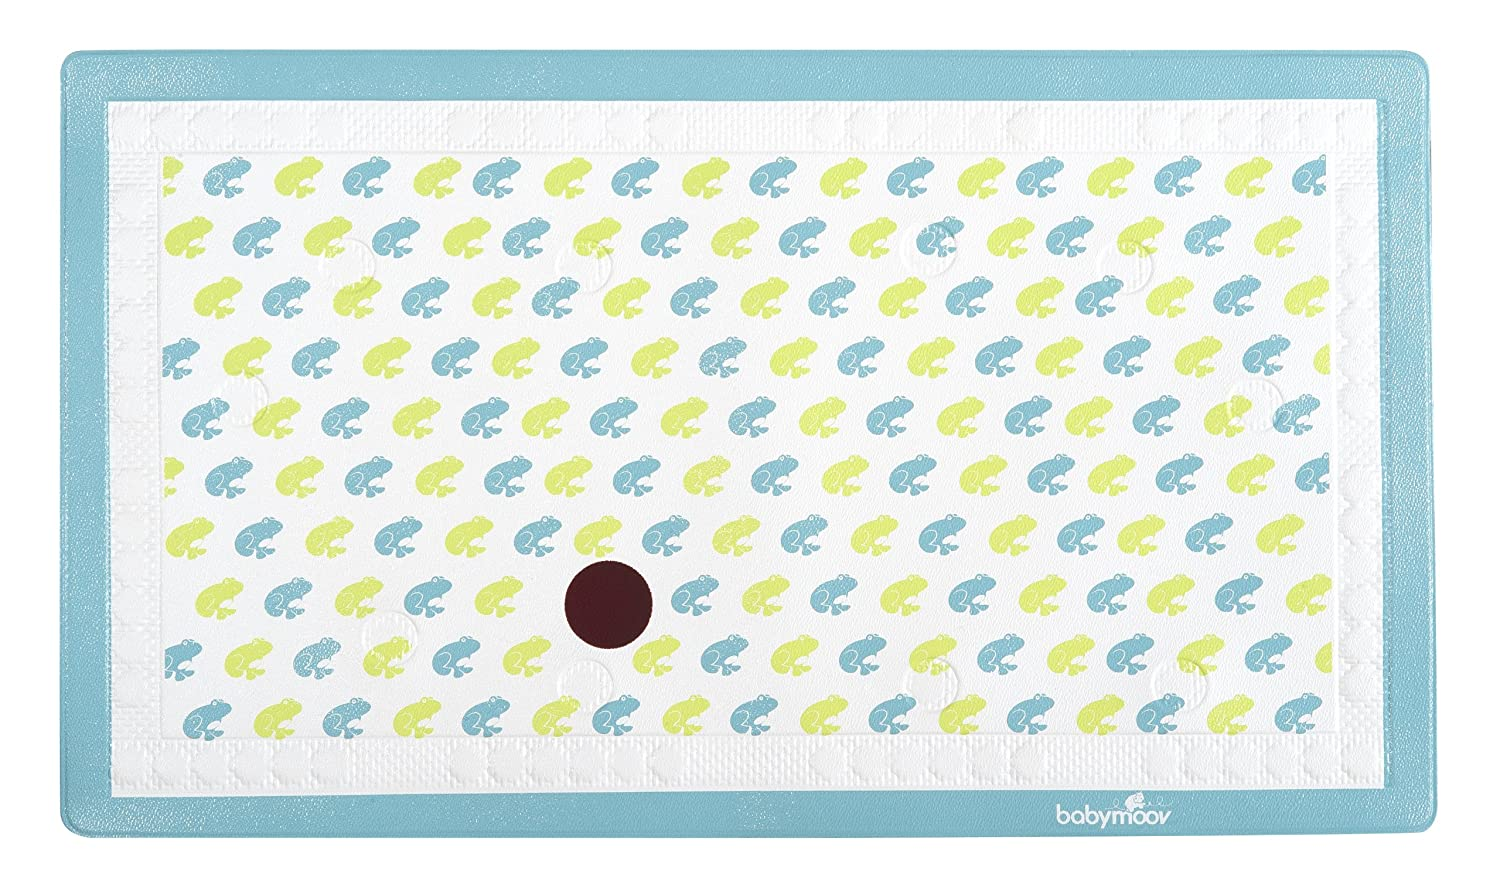 Babymoov Bathmat with Thermometer Frog, Green, Turquoise, 1 Pack A020205